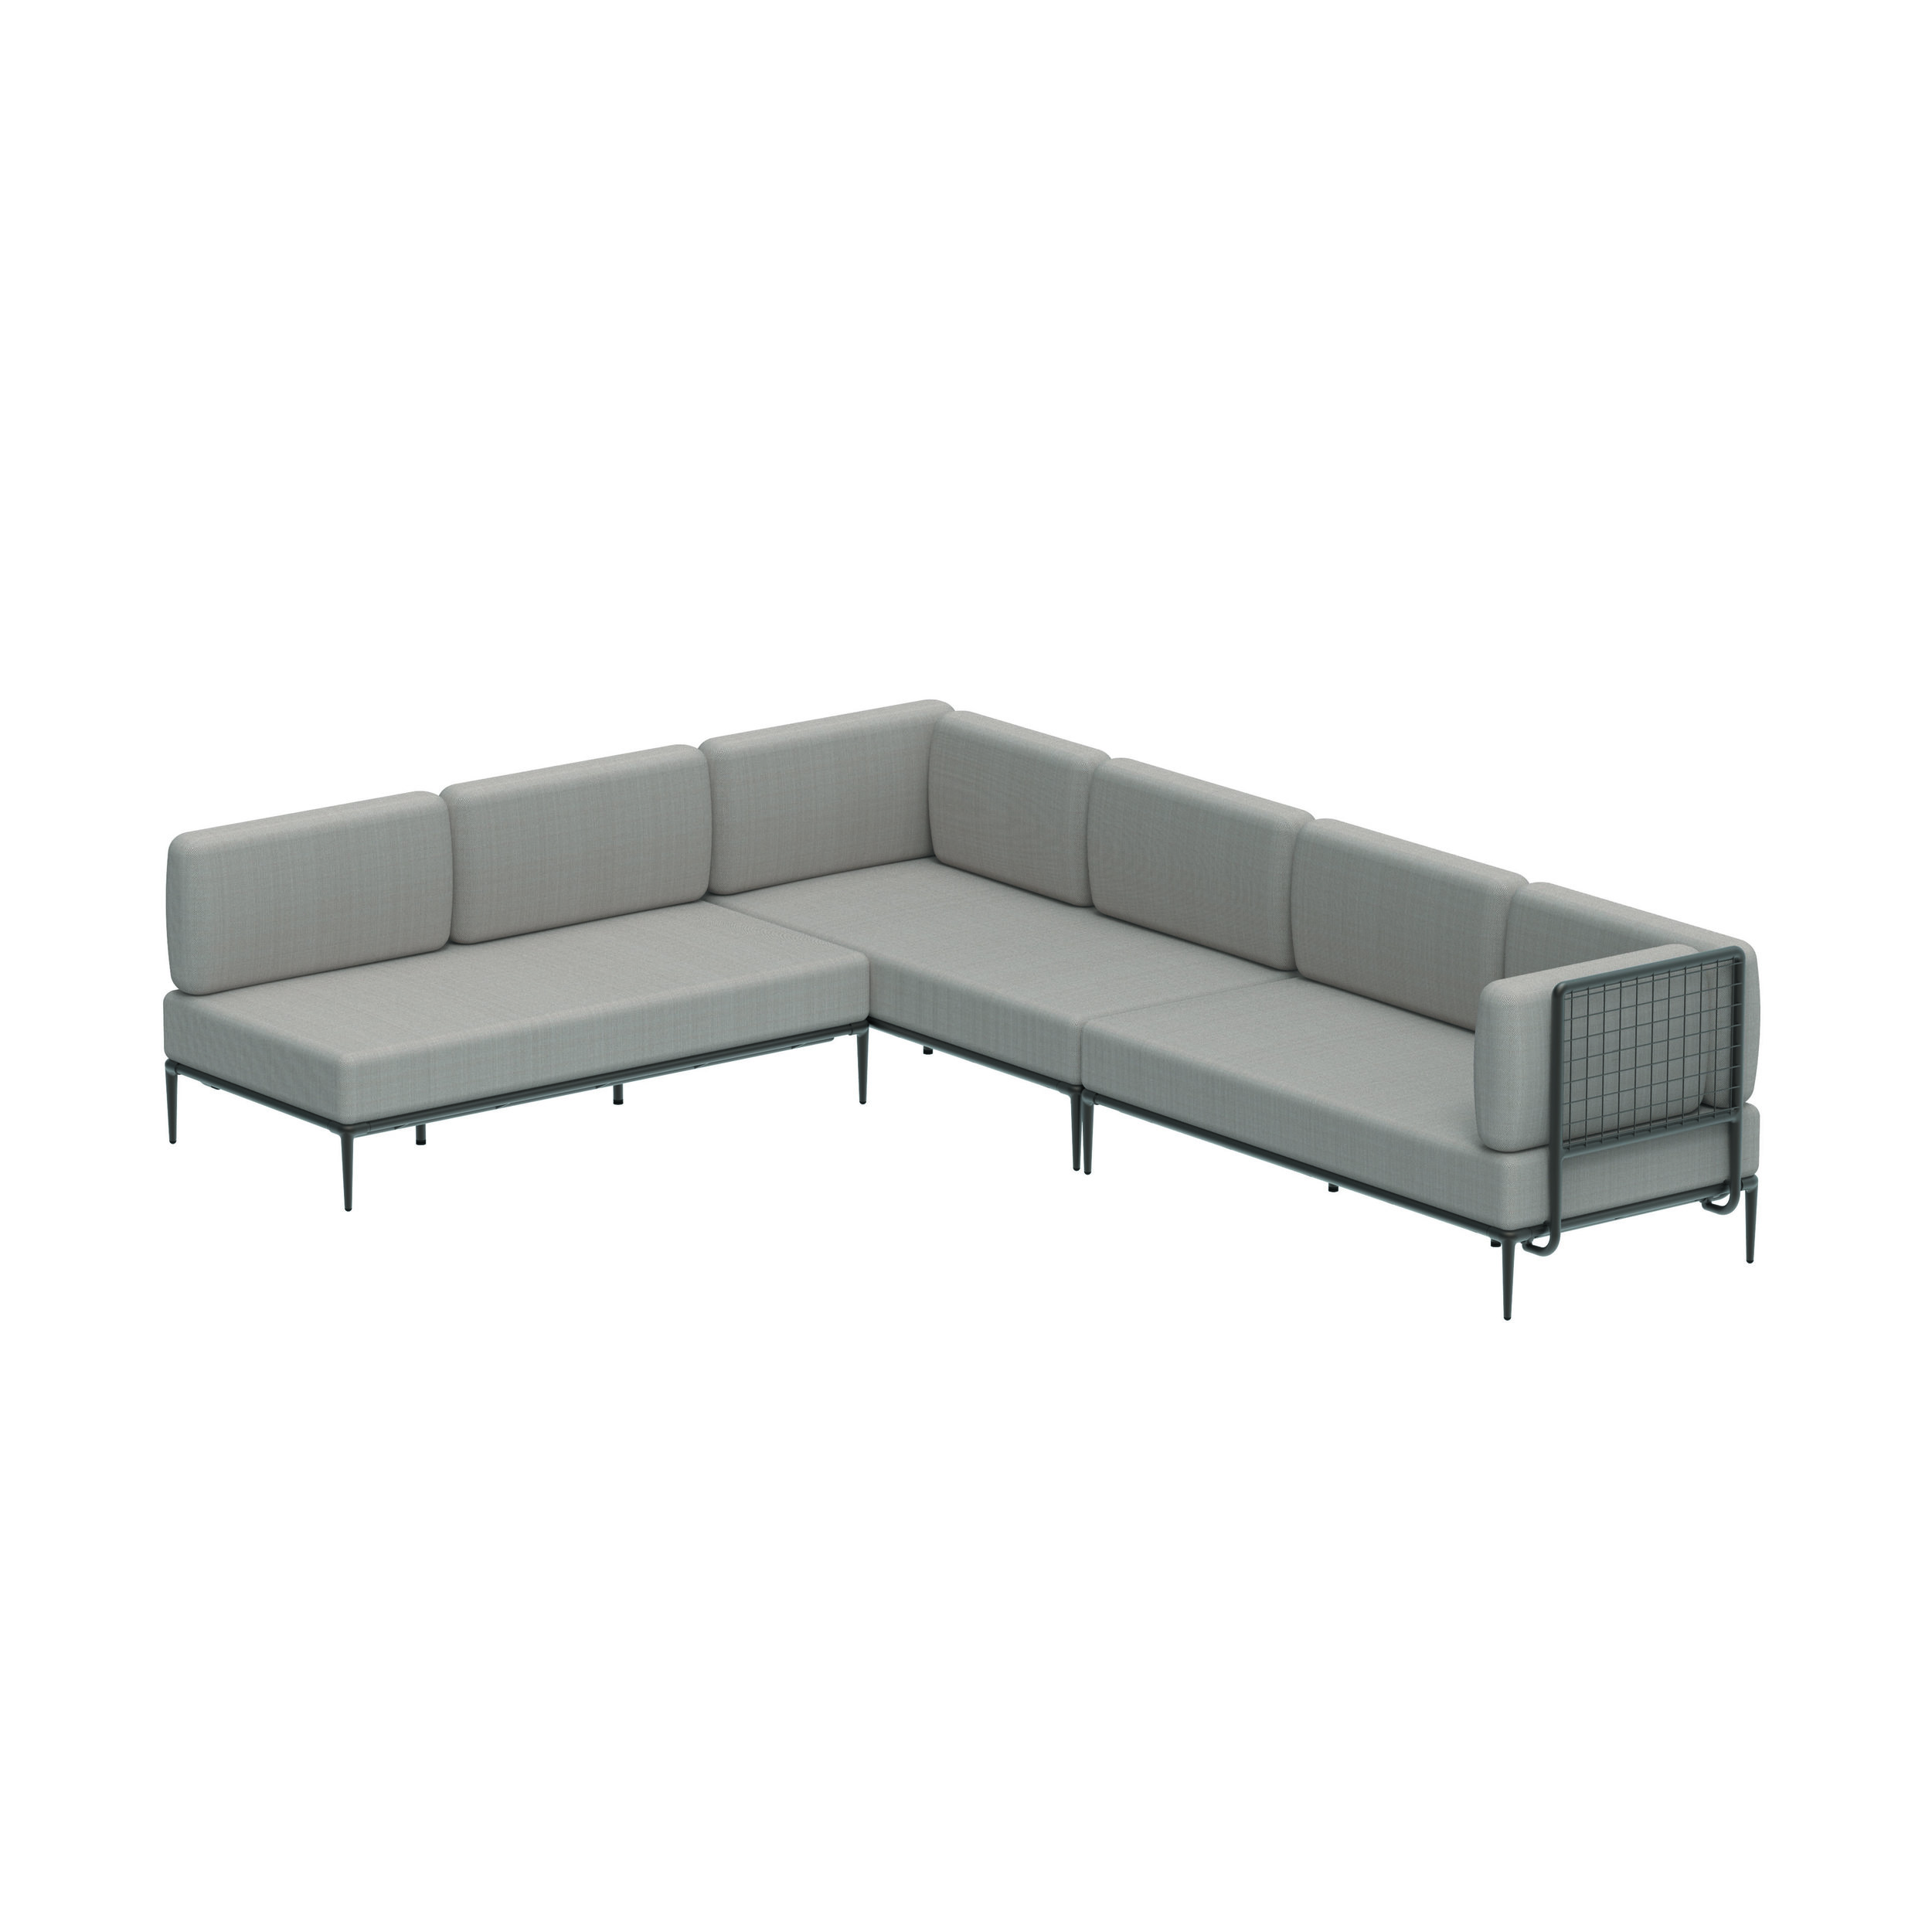 LUSSET LOUNGE SECTIONAL copy.jpg